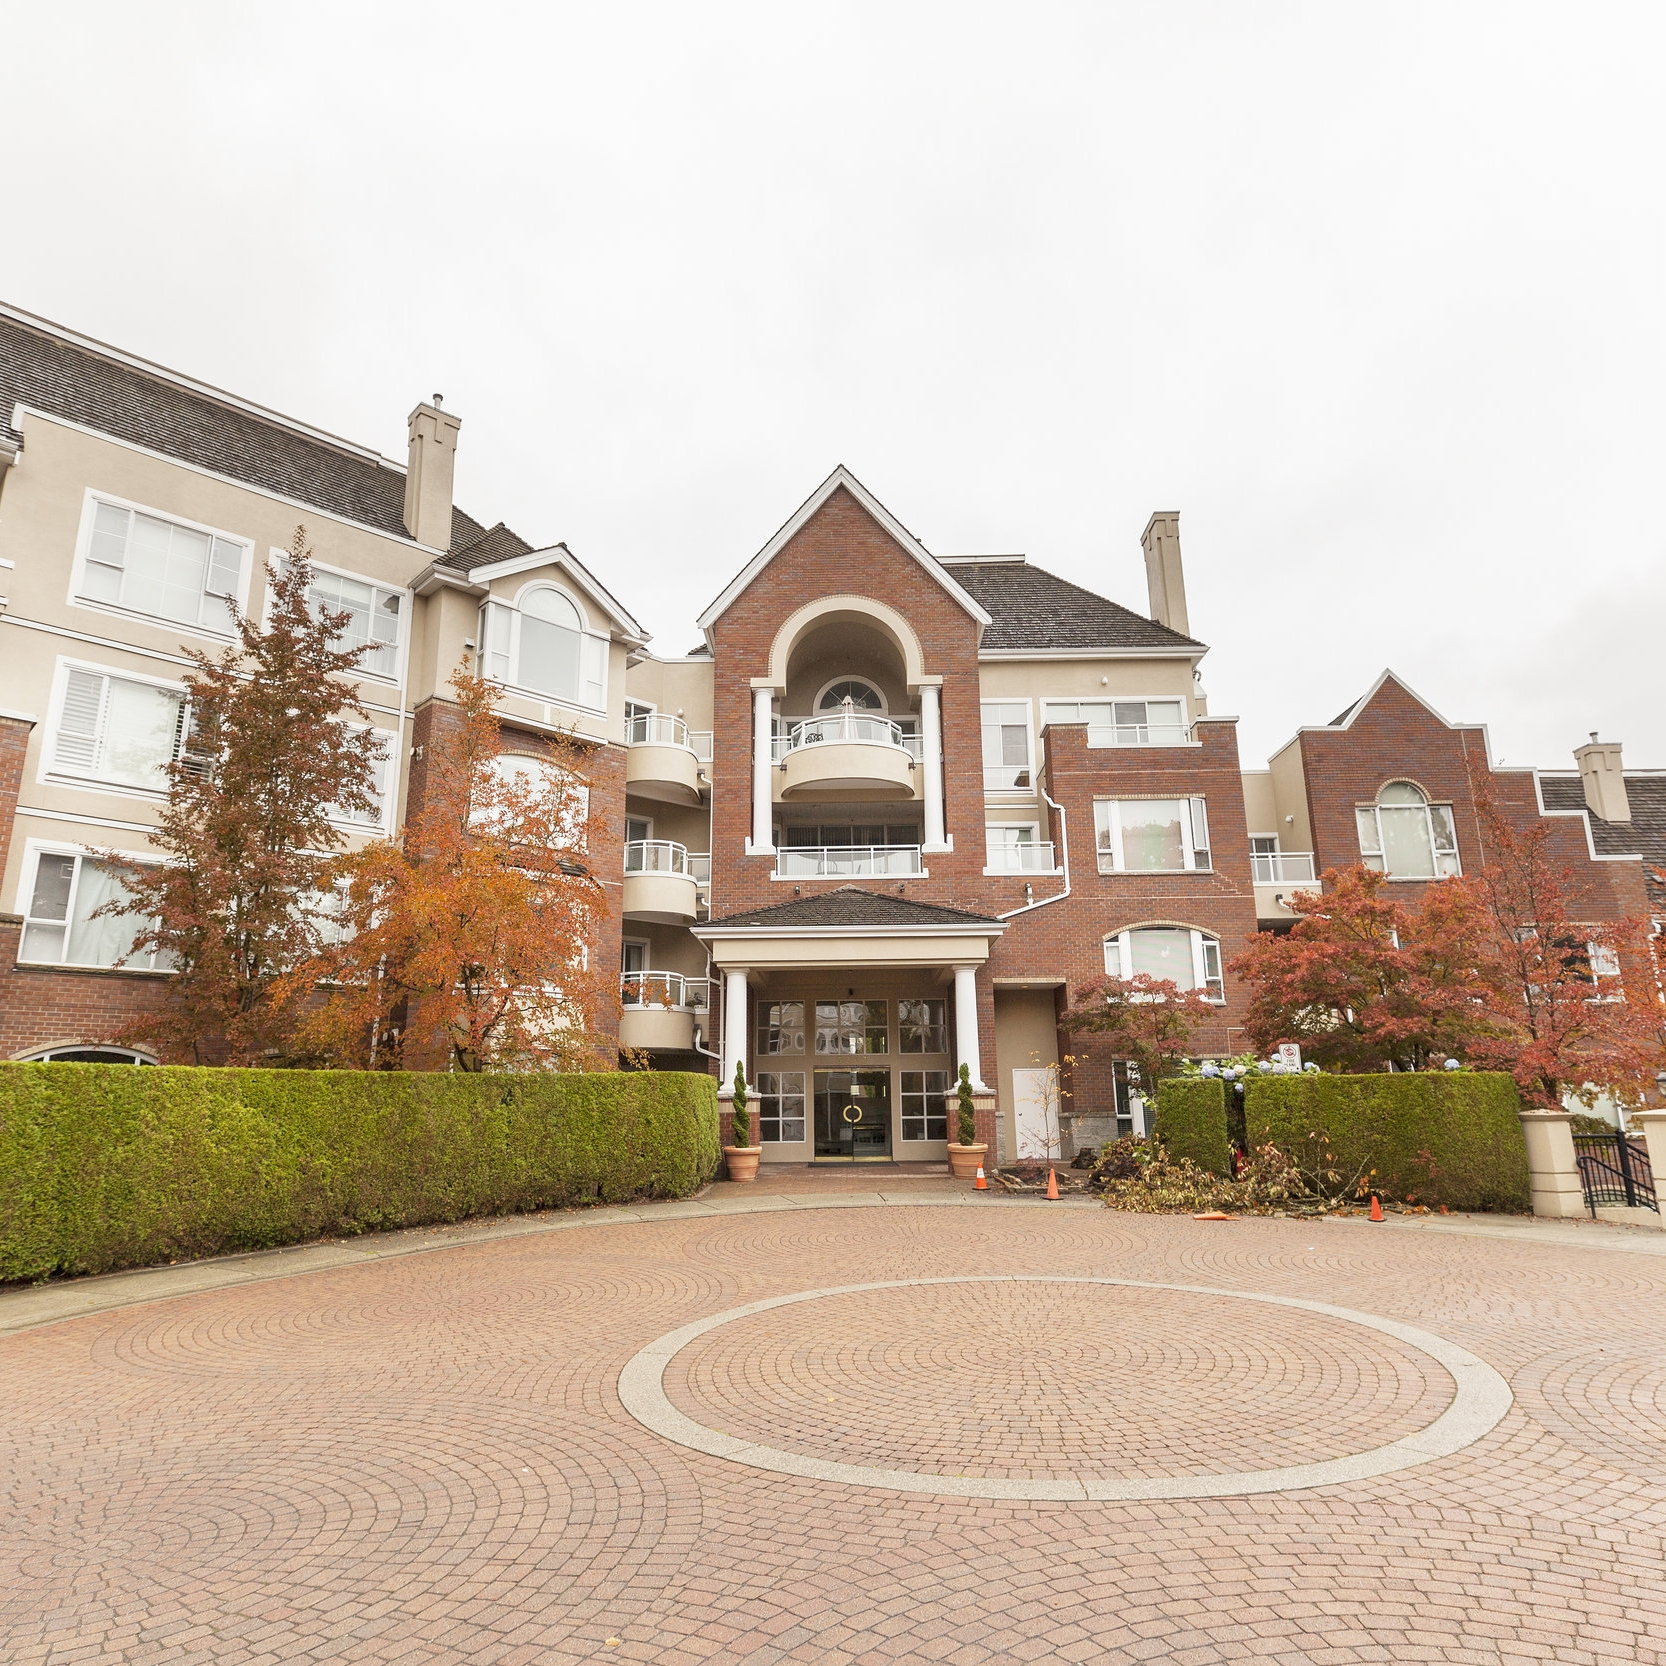 511 - 5262 oAKMOUNT CRES - 2 BED | 2 BATH | 1023 SQFT